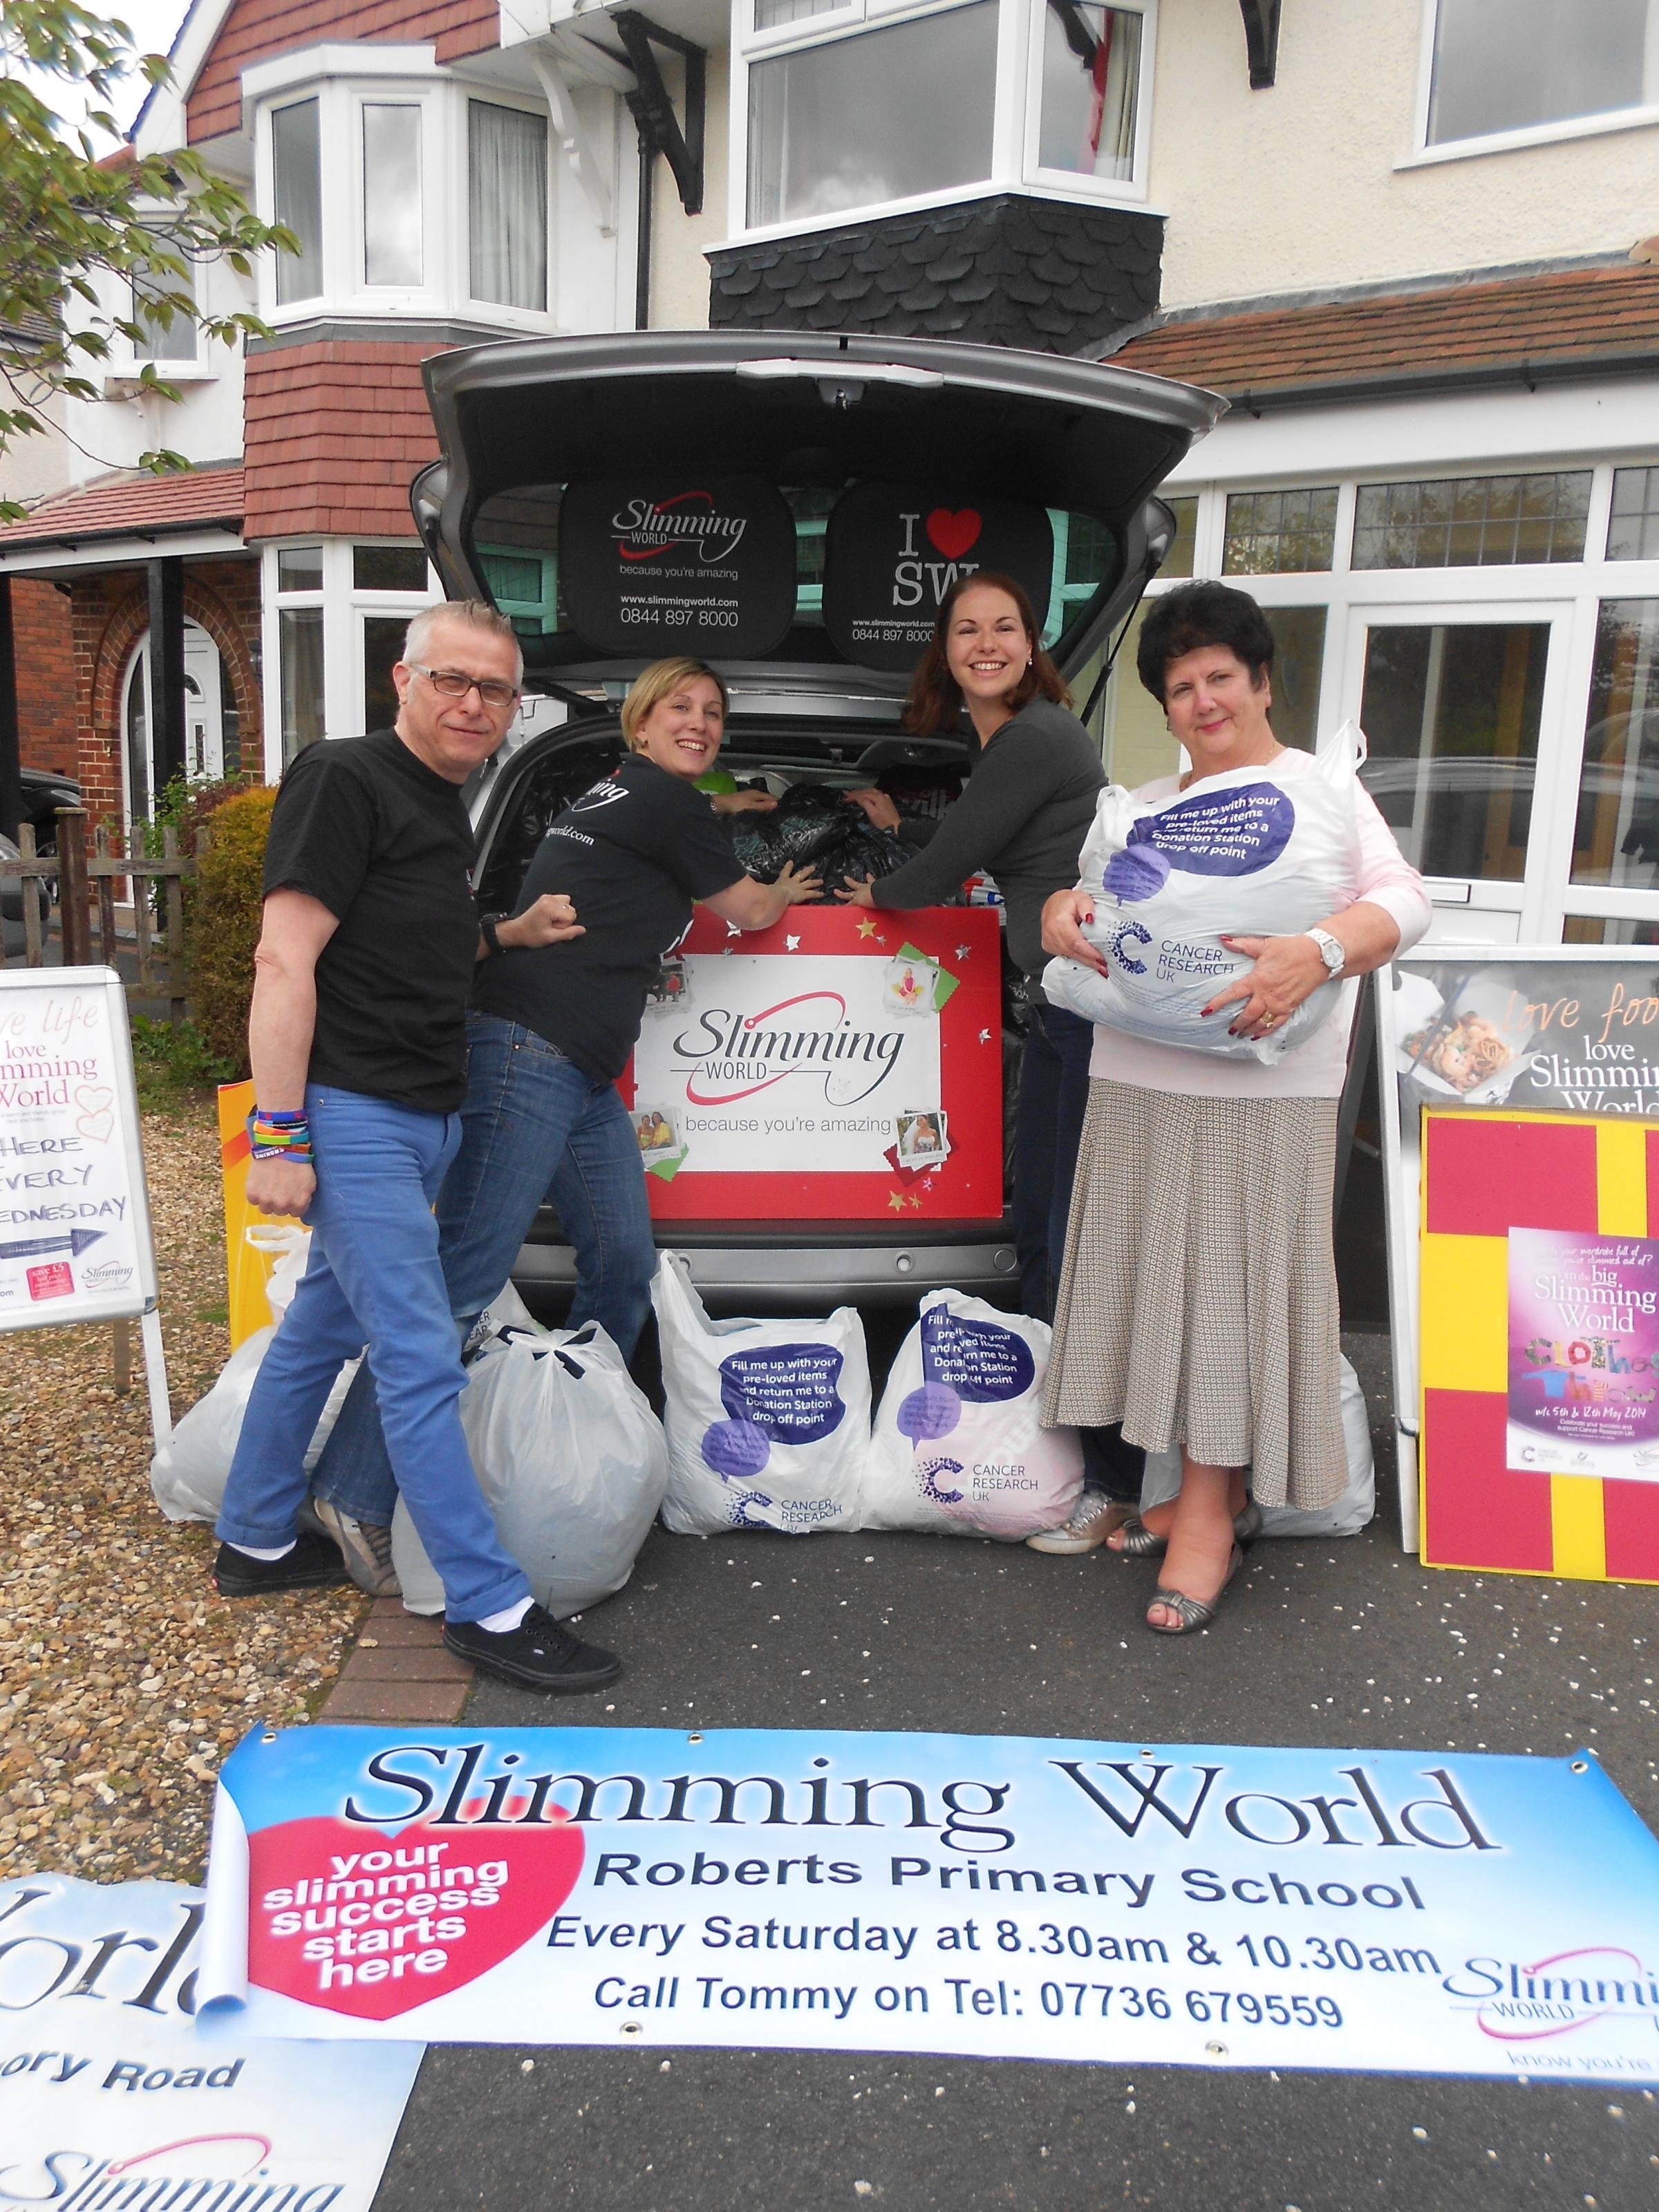 Slimmers with their donations: l-r Tommy Cook, Caroline Pitt, Laura  Wade and Ann Blundell.